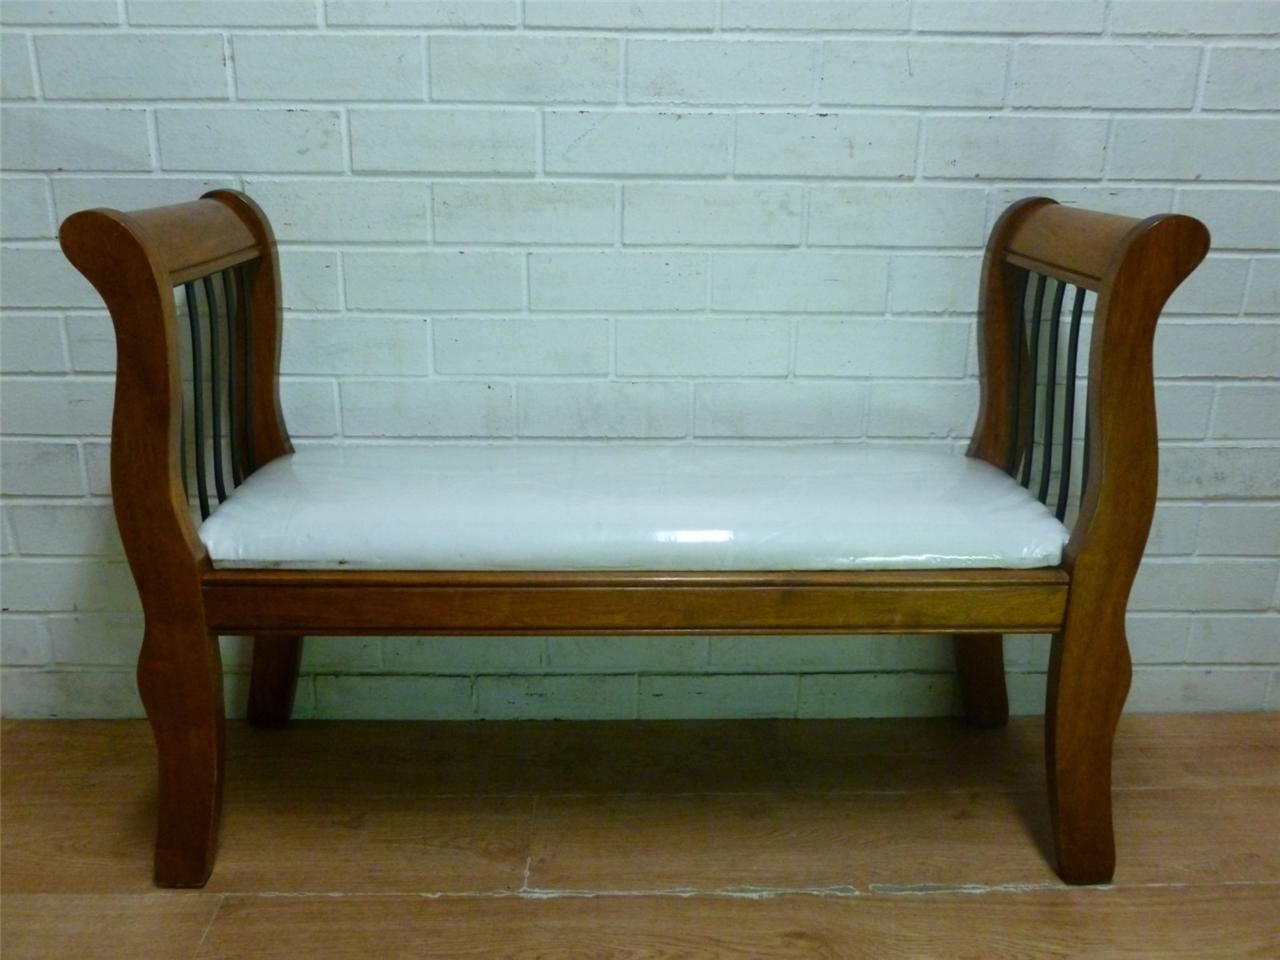 period style solid wood bedroom bench seat chair ebay